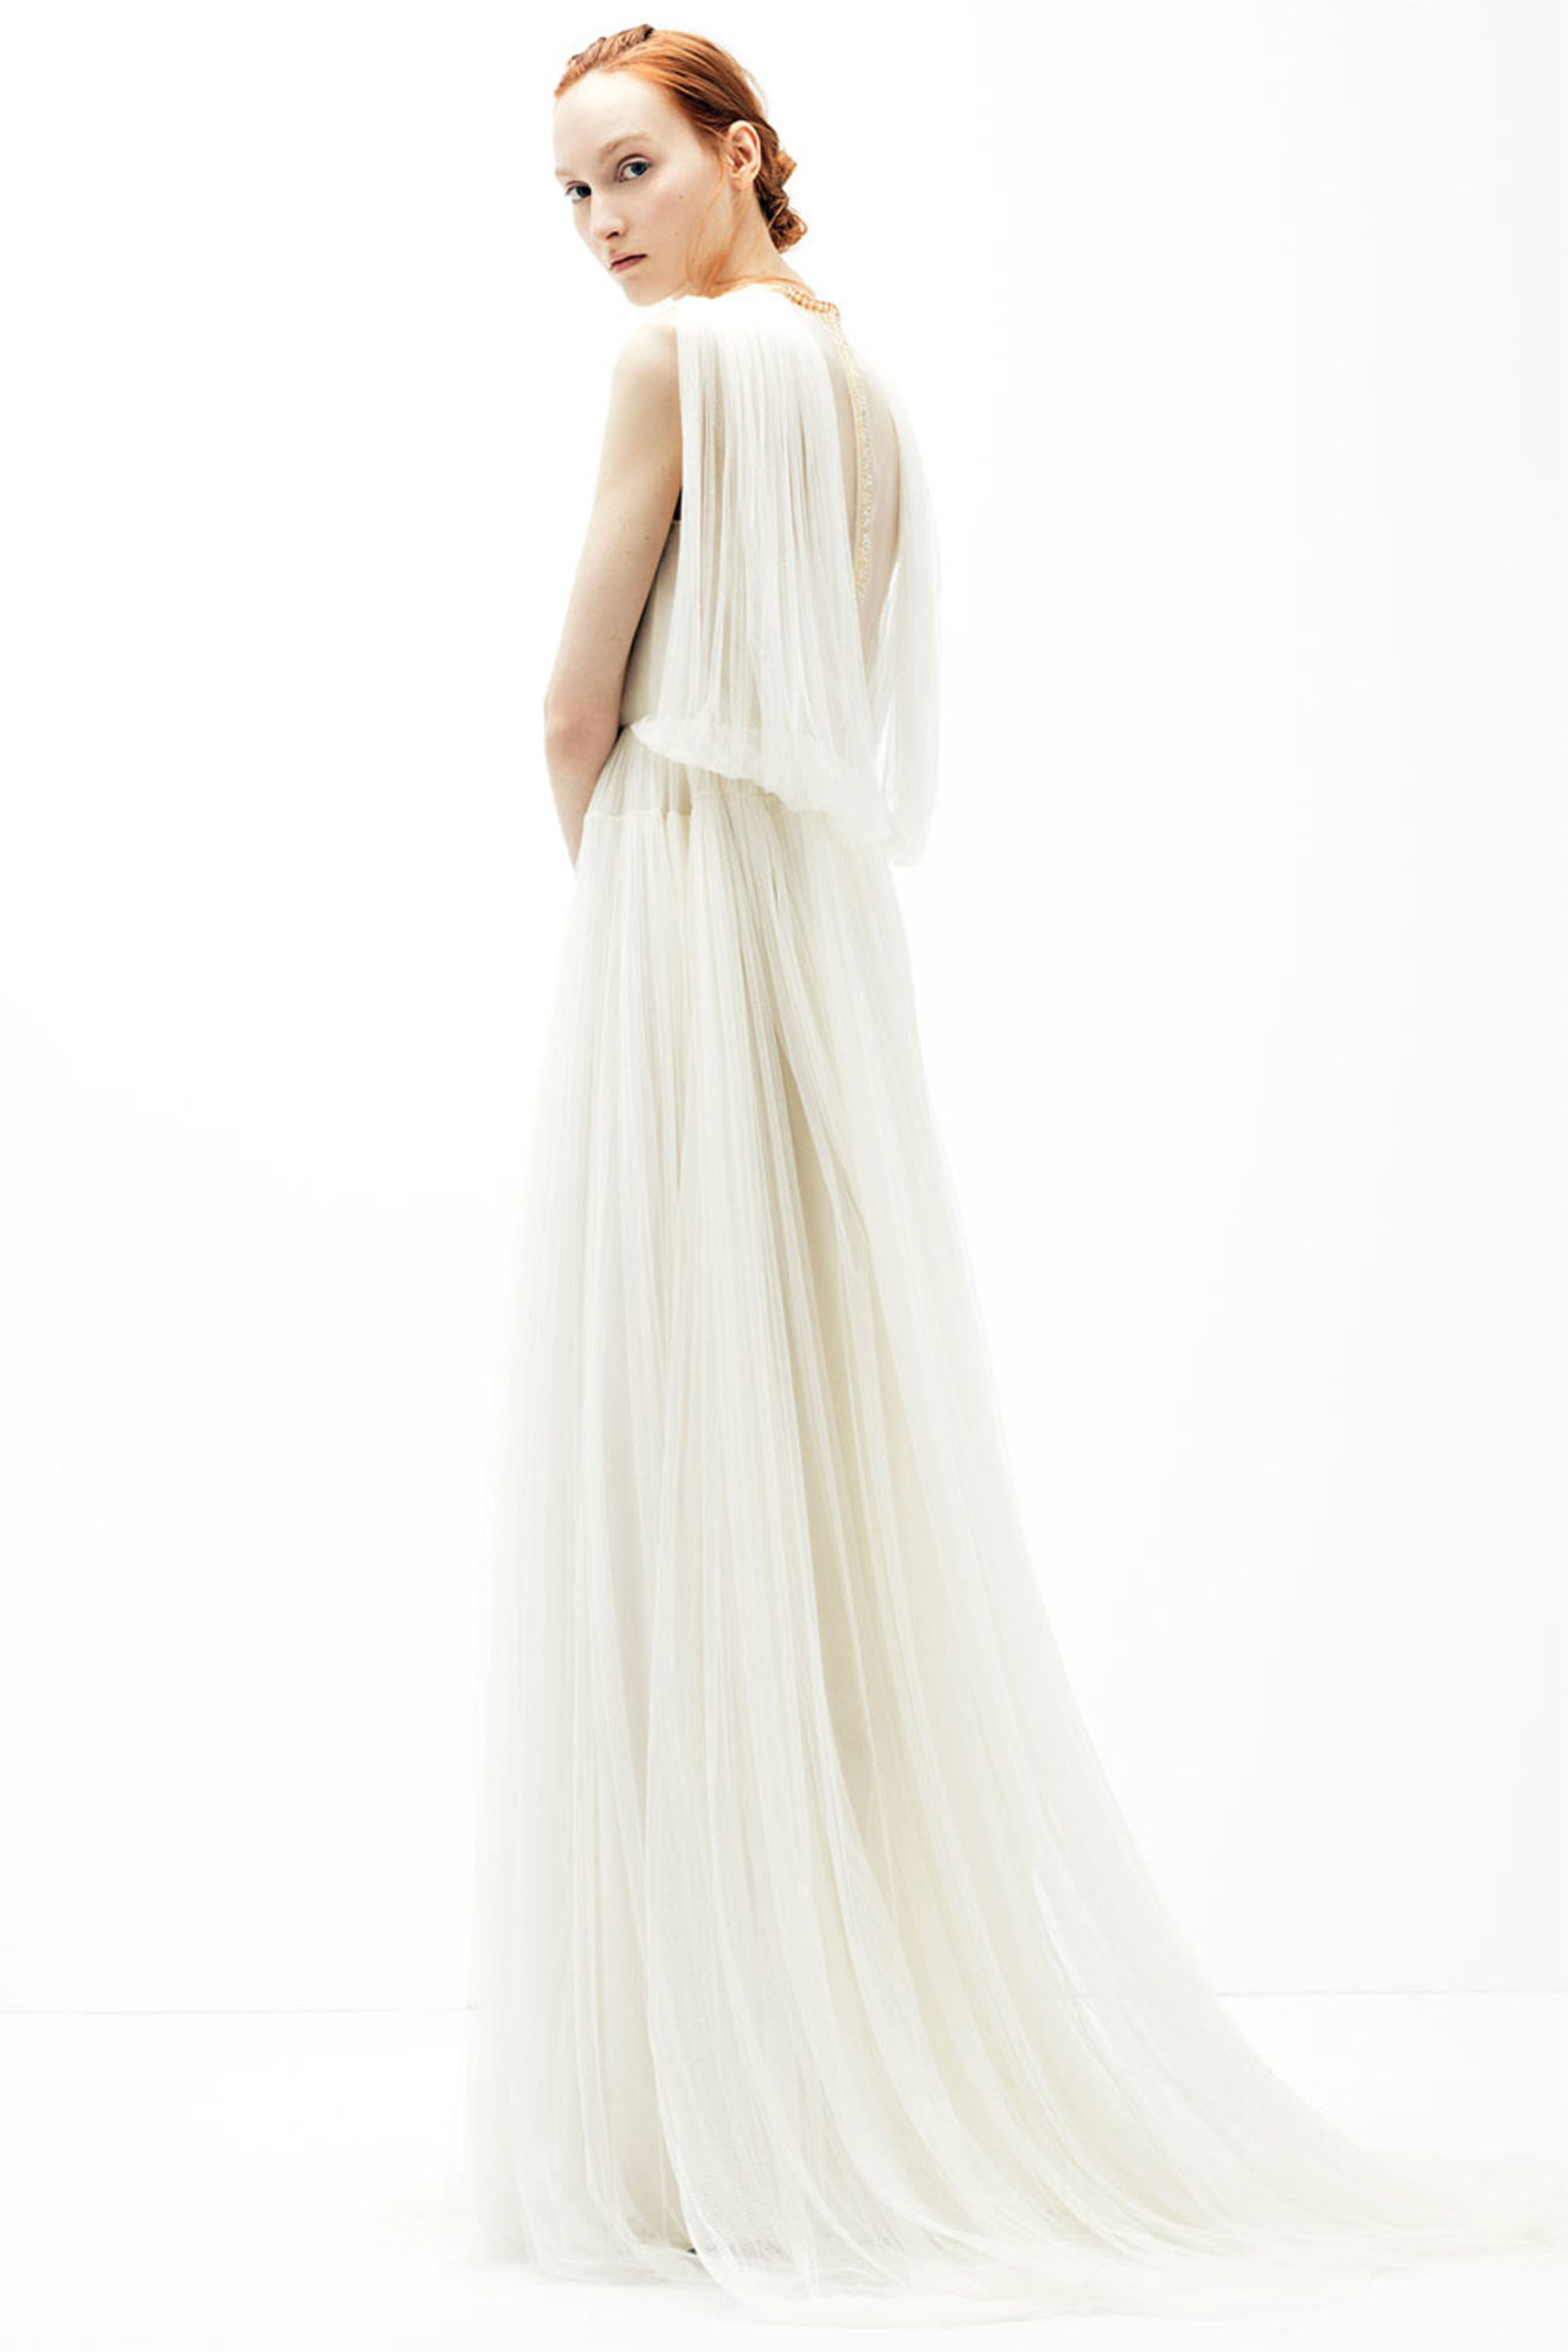 50 Beautiful Beach Wedding Dresses Bridal Gowns for a